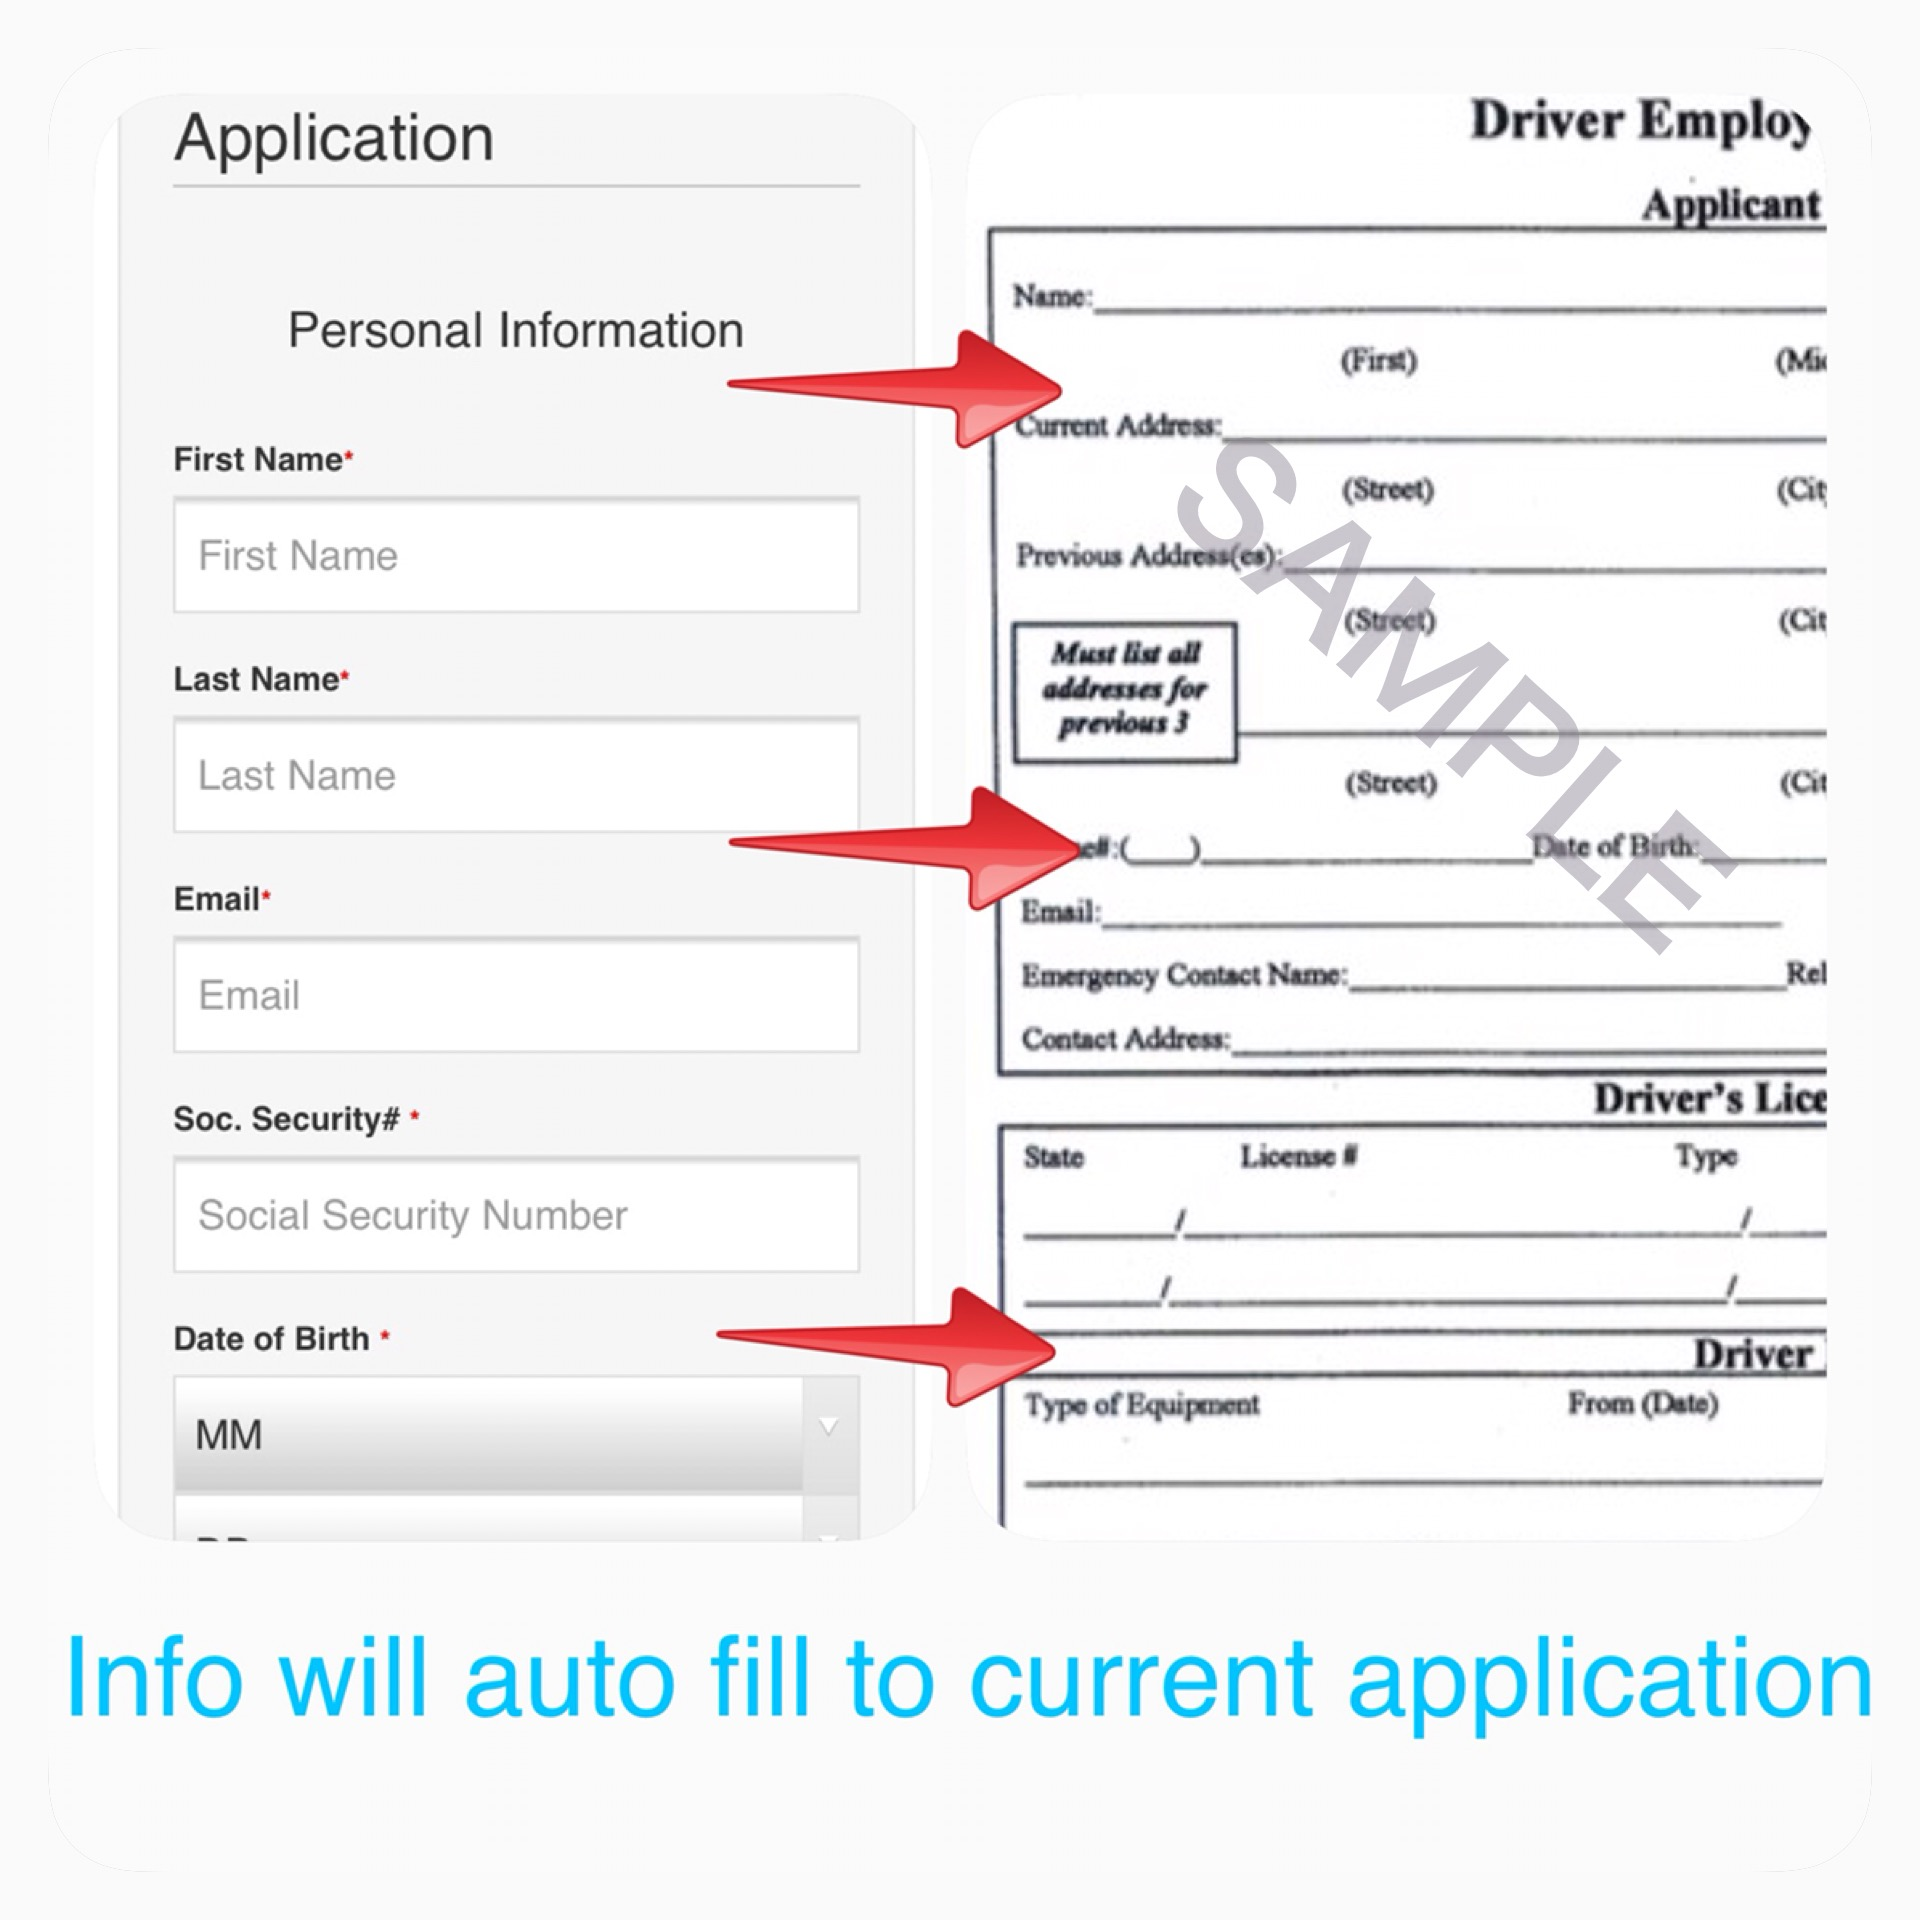 online trucking application builder american trucking resources either an electronic form or your companies existing pdf application will be delivered to your email releases and user signatures included